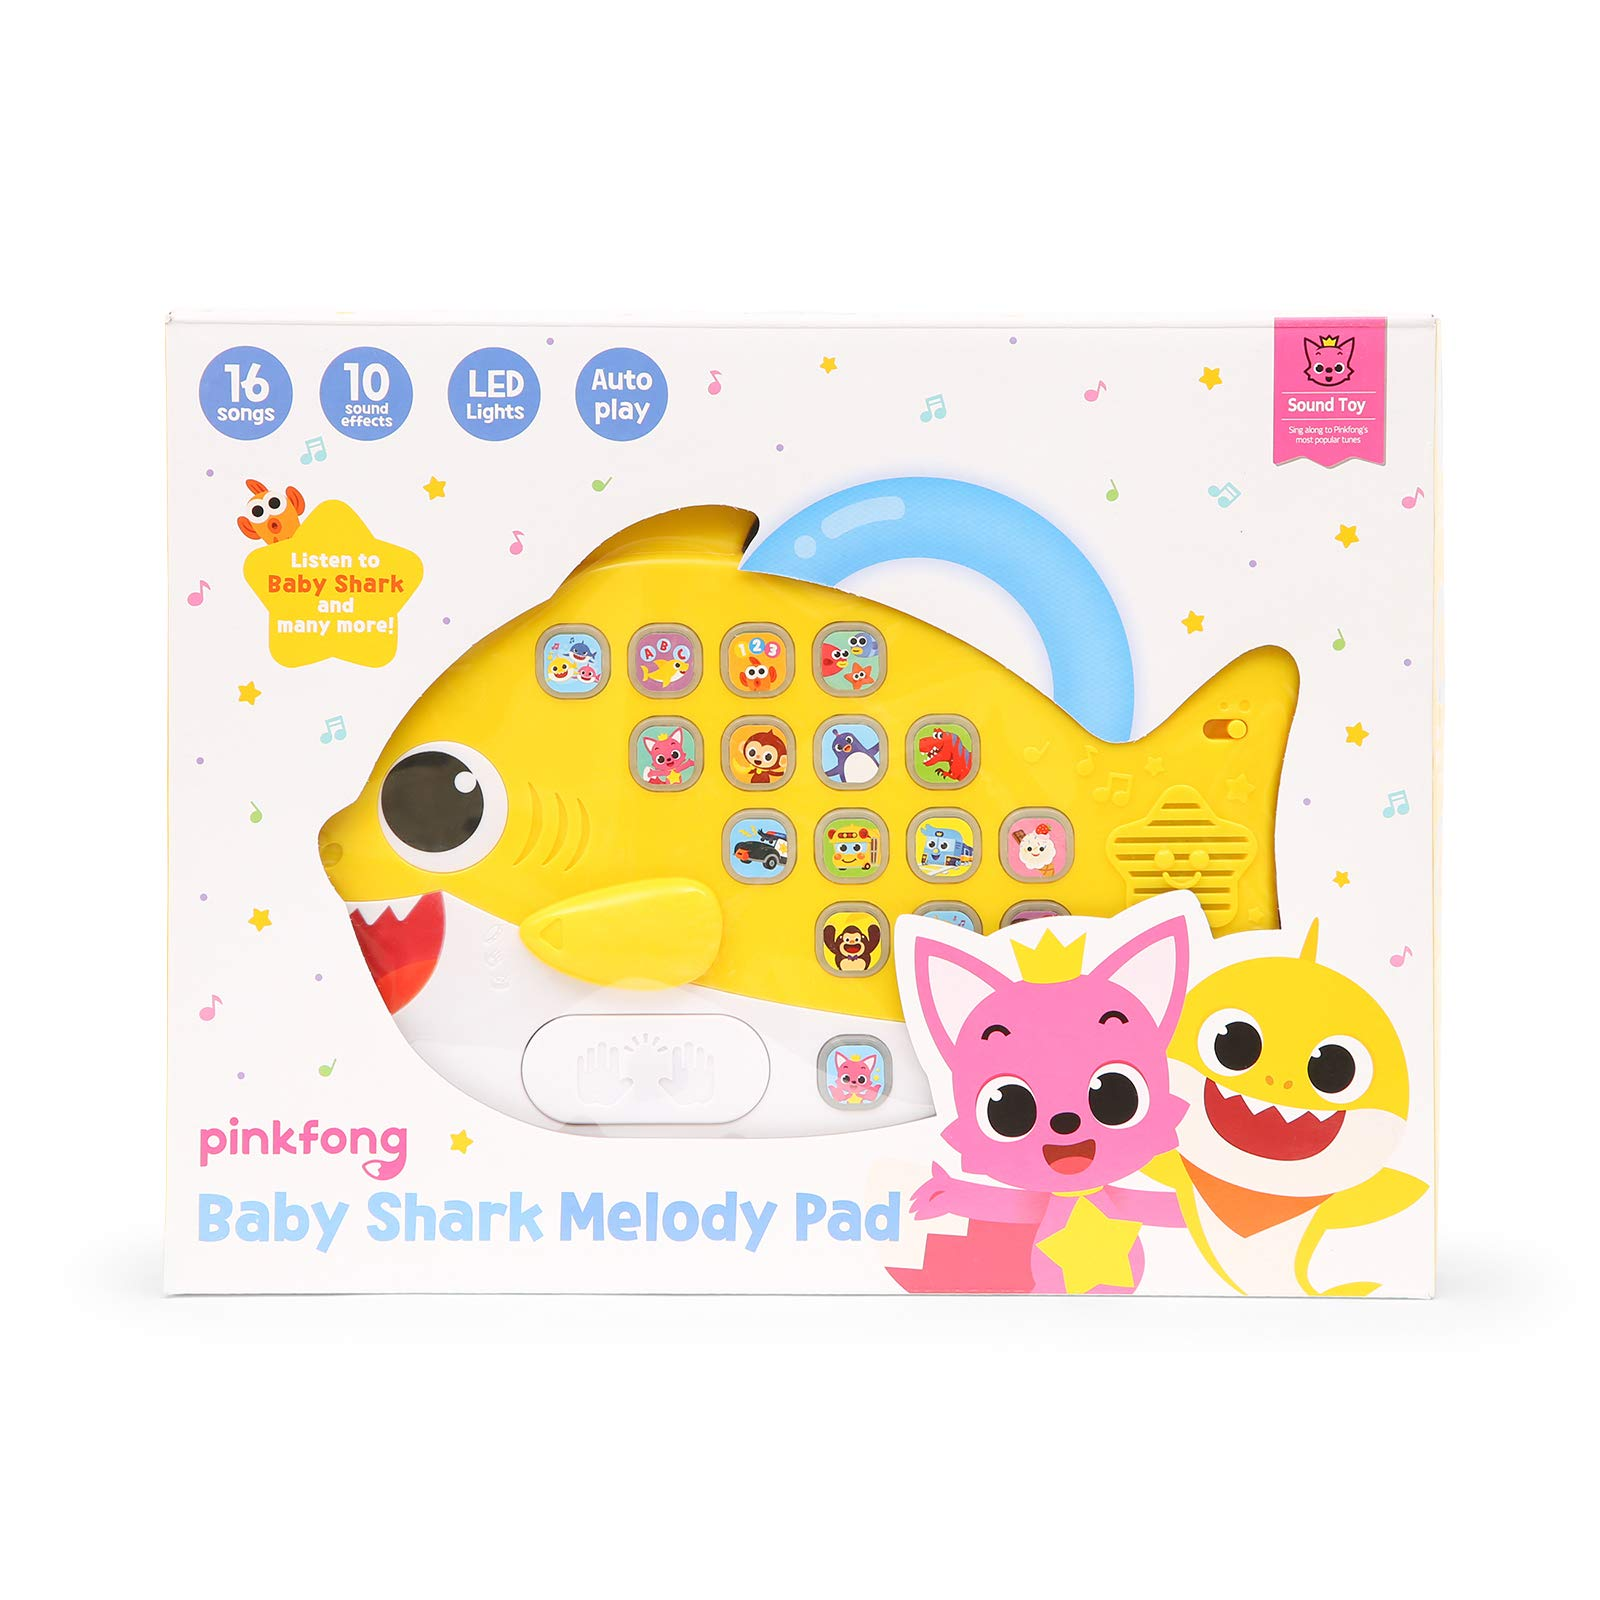 Pinkfong Baby Shark Melody Pad by Pinkfong (Image #1)